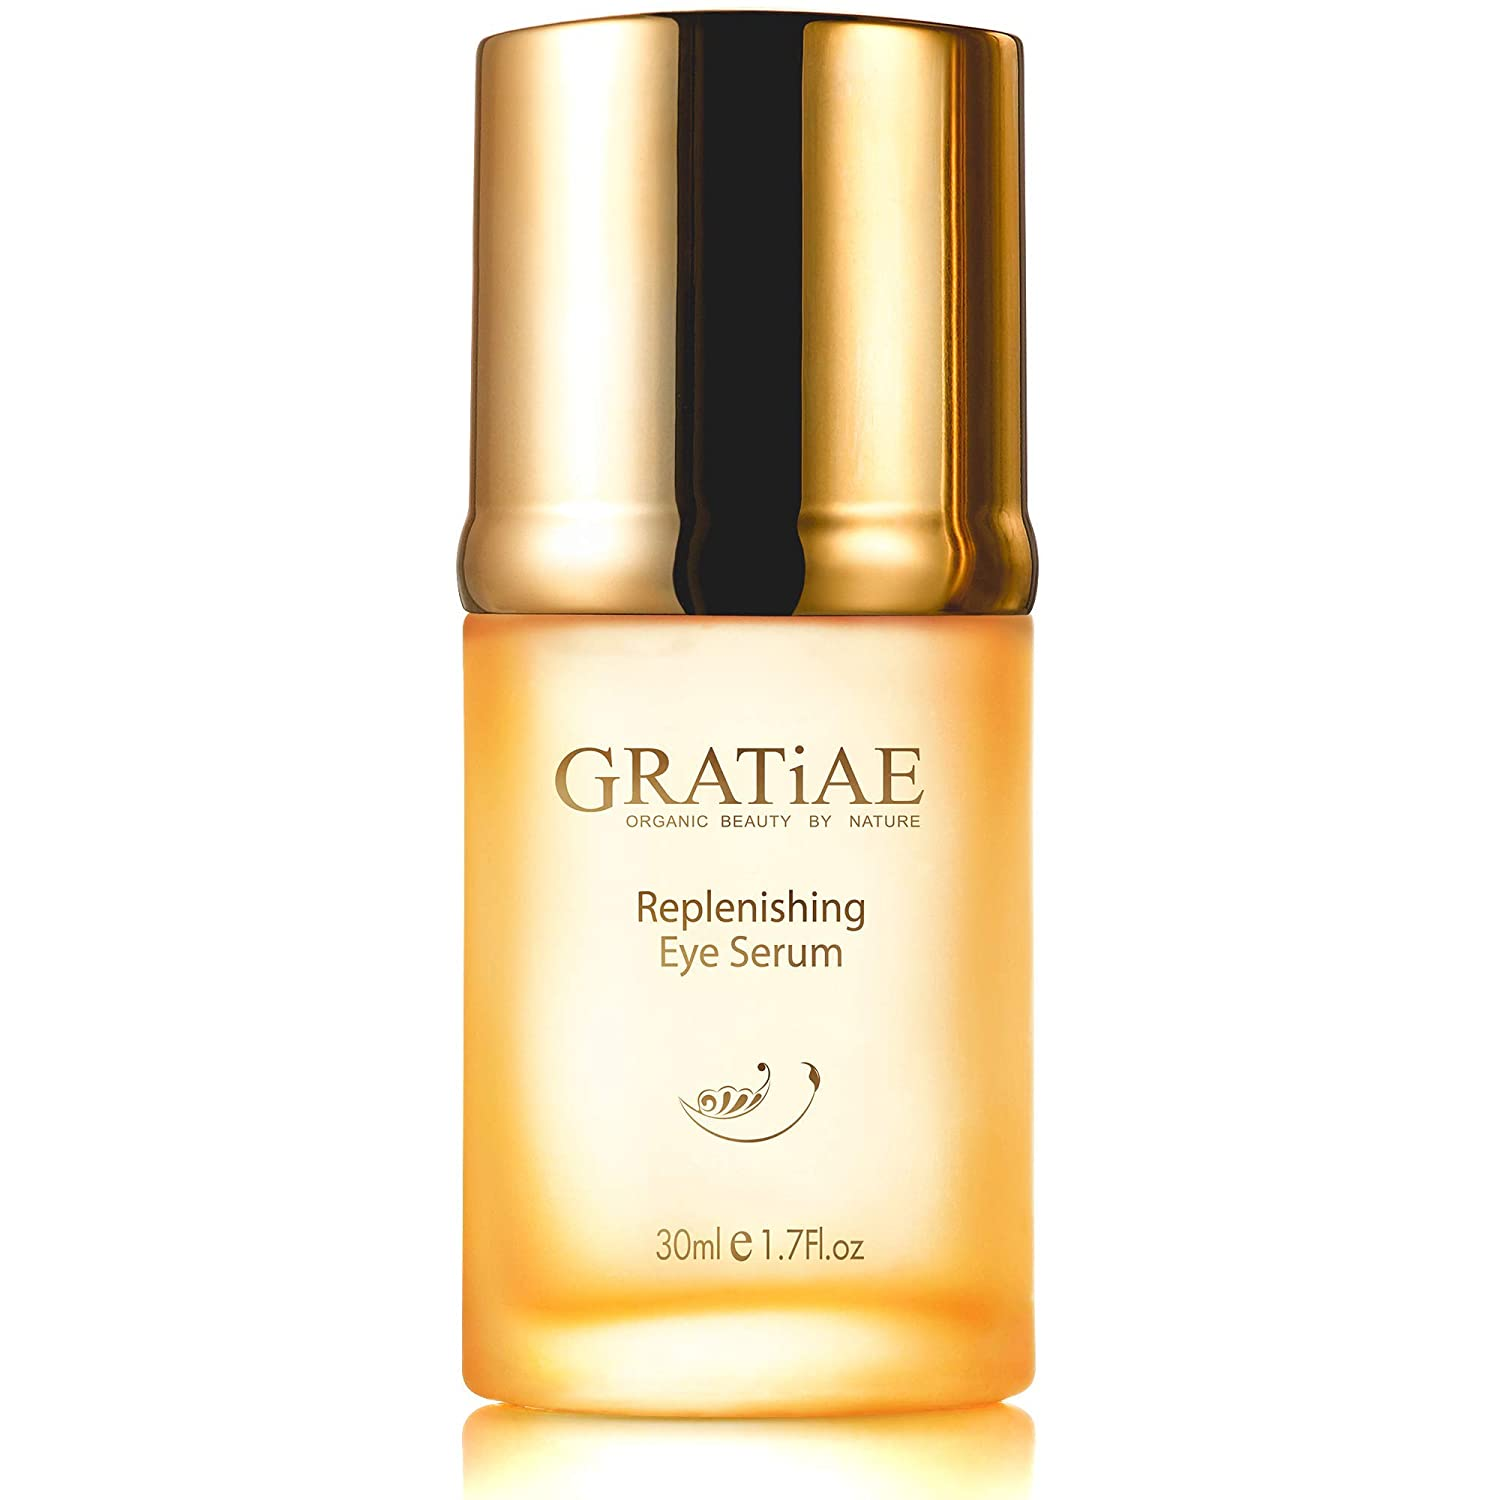 Gratiae organic replenishing eye serum, anti-aging serum for Wrinkles, Crows Feet and Puffiness, dark circles under eye treatment, minimize wrinkles and superior skin care for Sagging skin, with vitamin E oil & retinol 1.02 Fl.oz